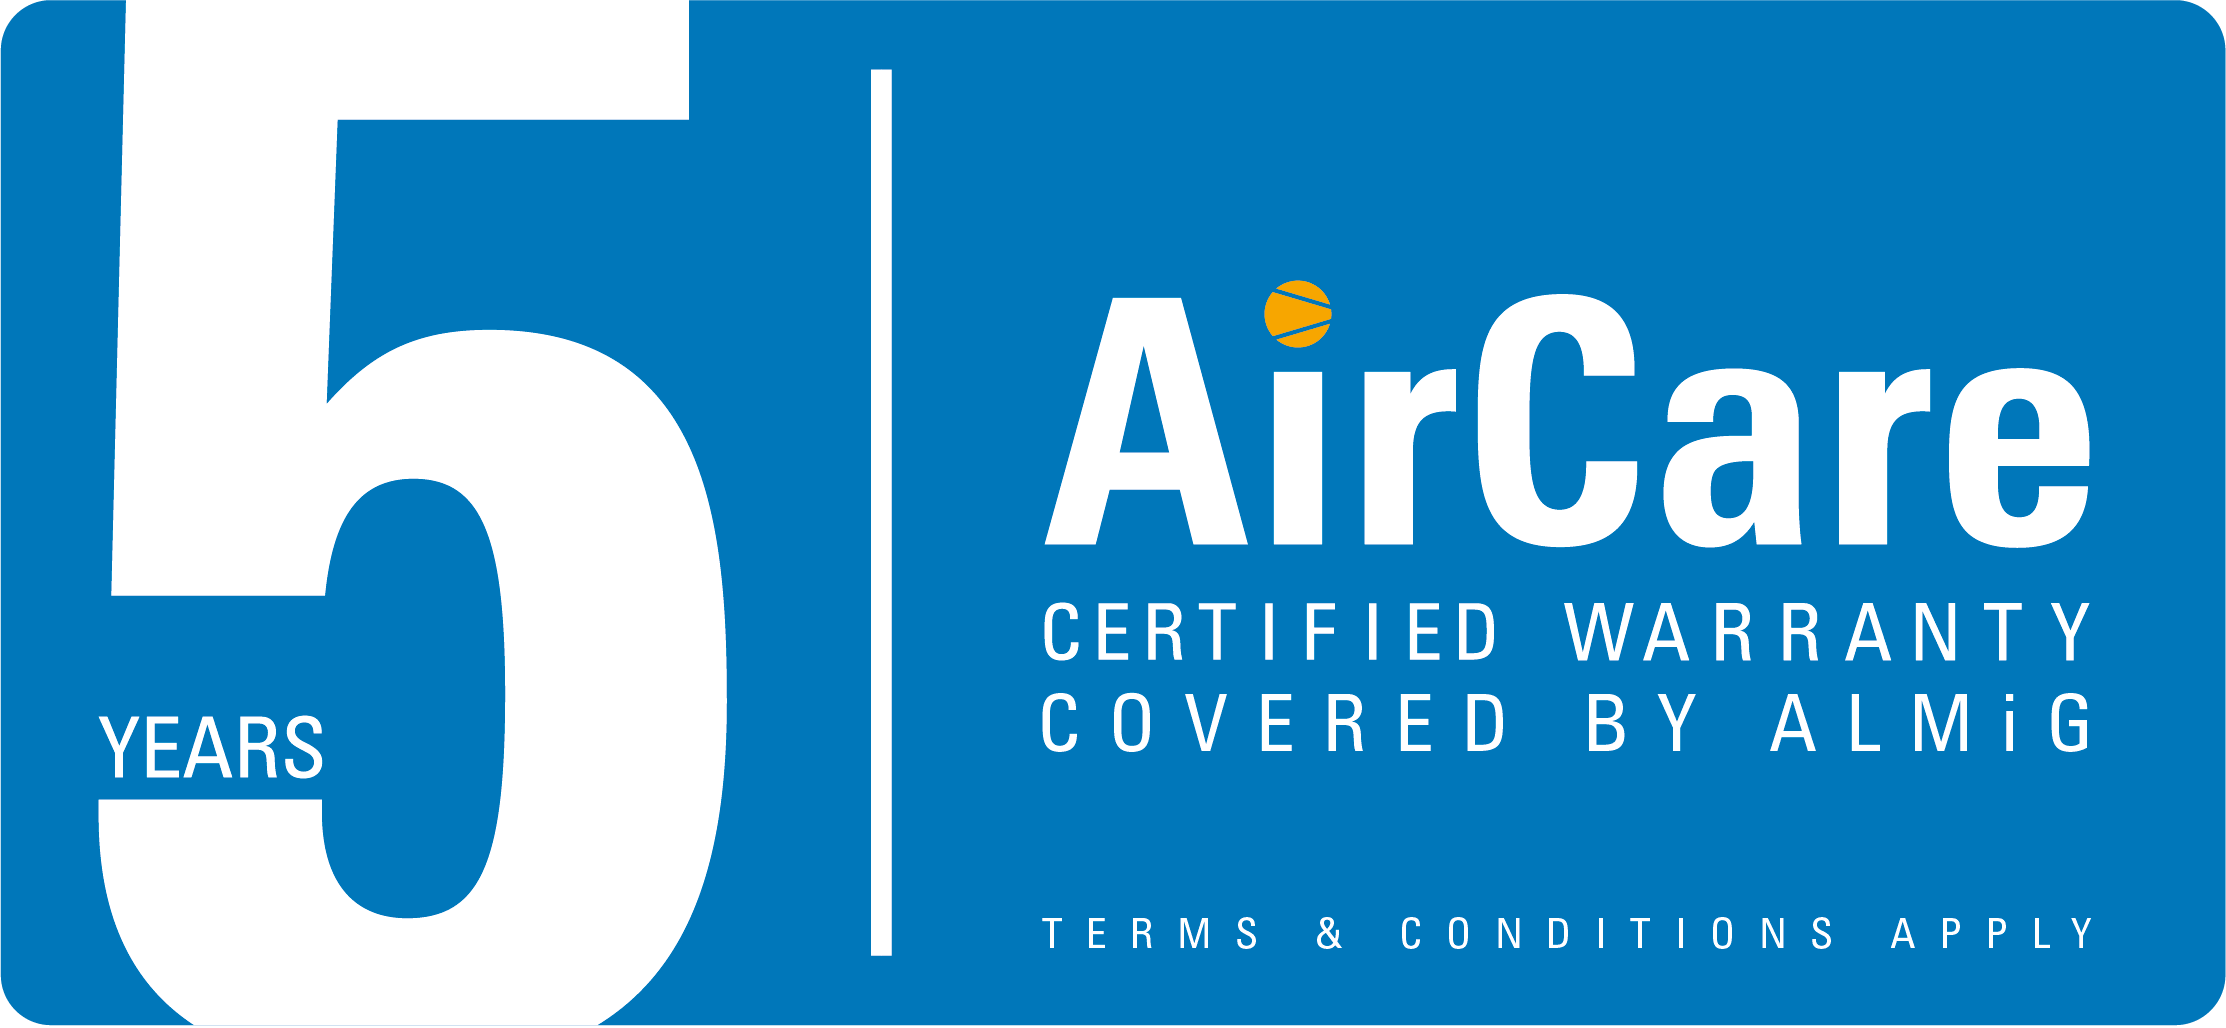 AirCare 5 years